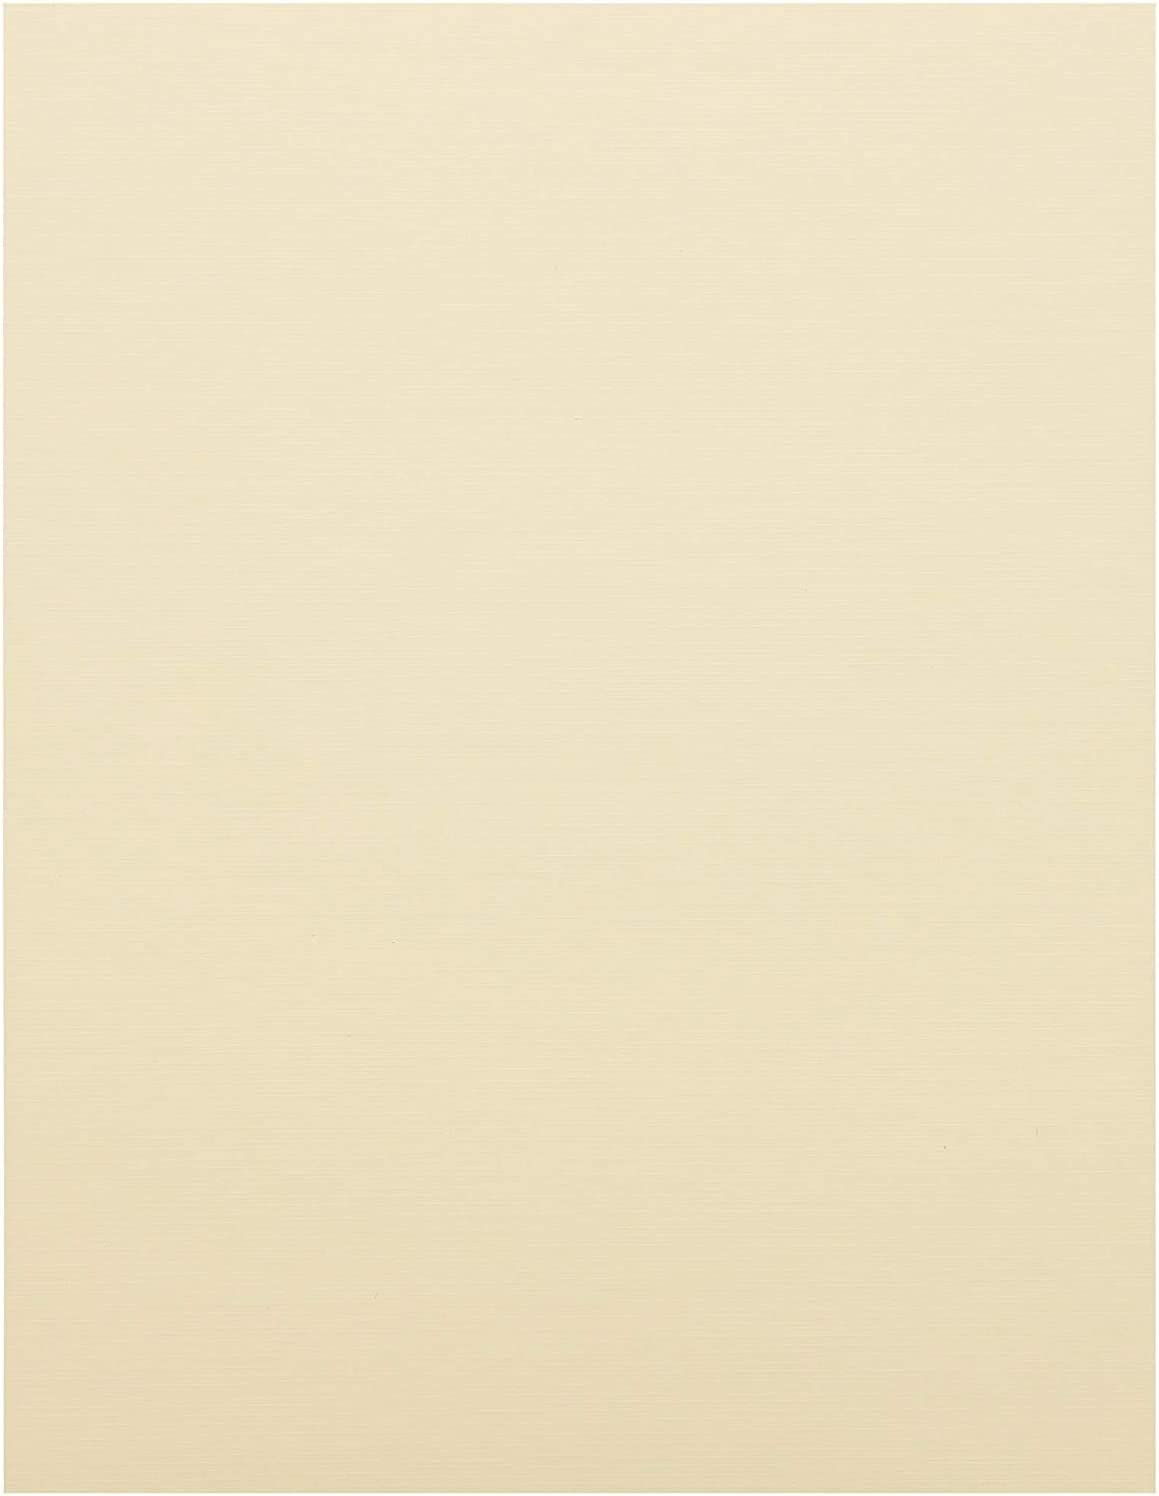 Cream Card Stock Paper, Letter Size (8.5 x 11 in, 50 Sheets)